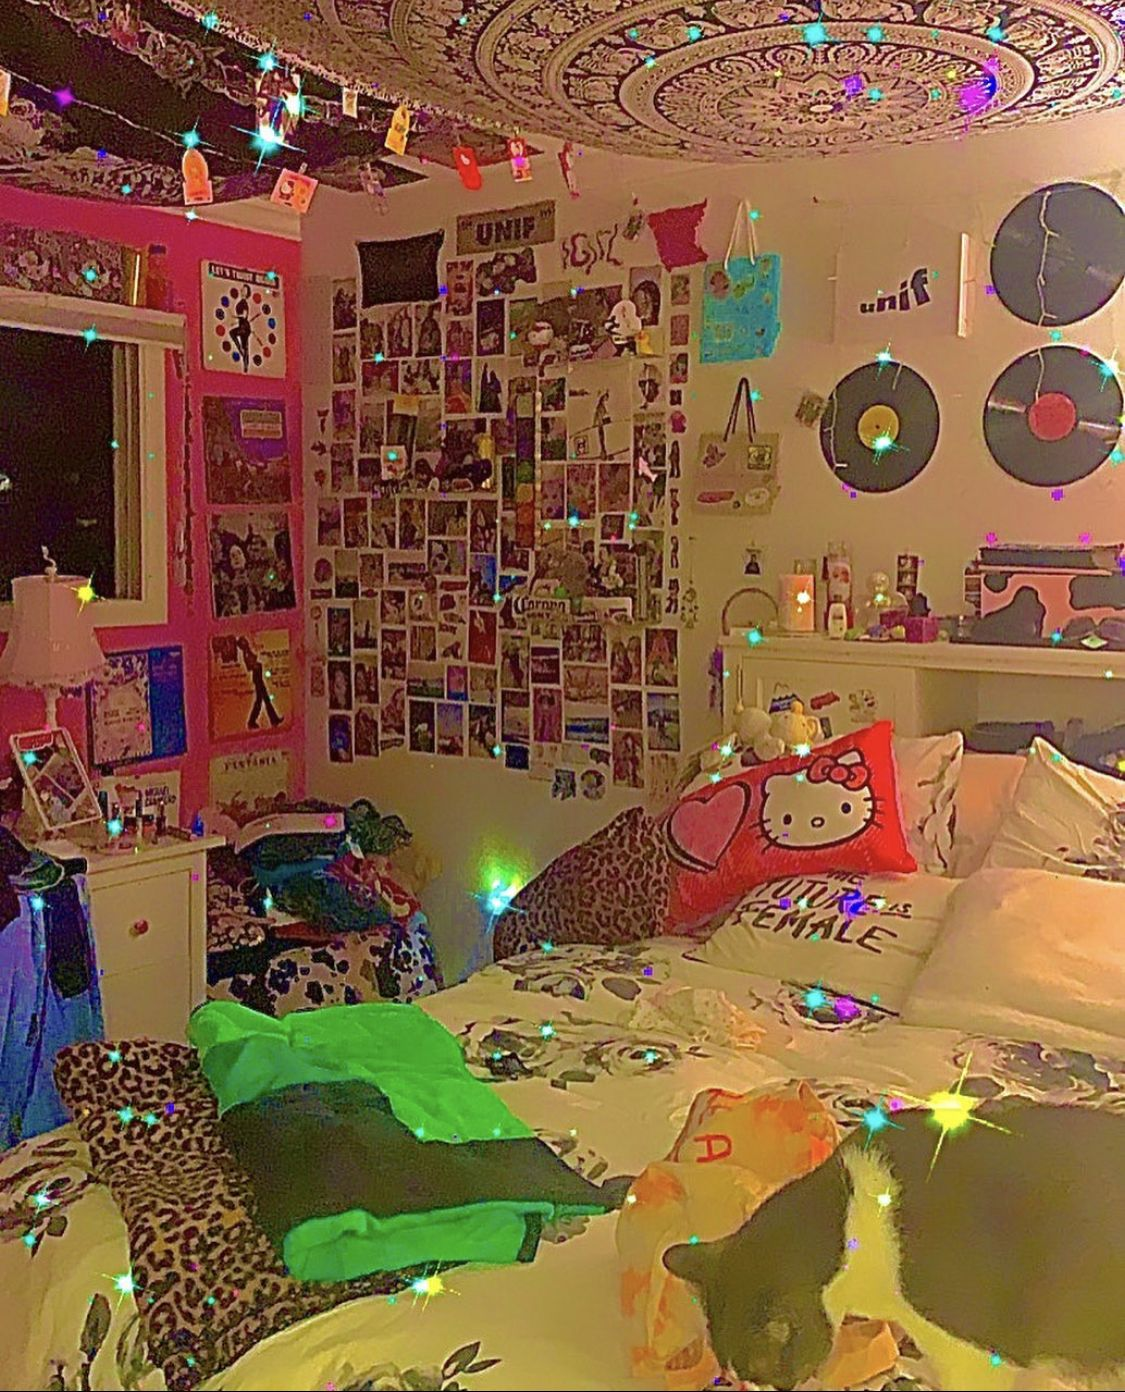 ?????? ???? ???? ???? ? in 2020 | Indie room decor, Dreamy ... on Room Decor Indie id=72759